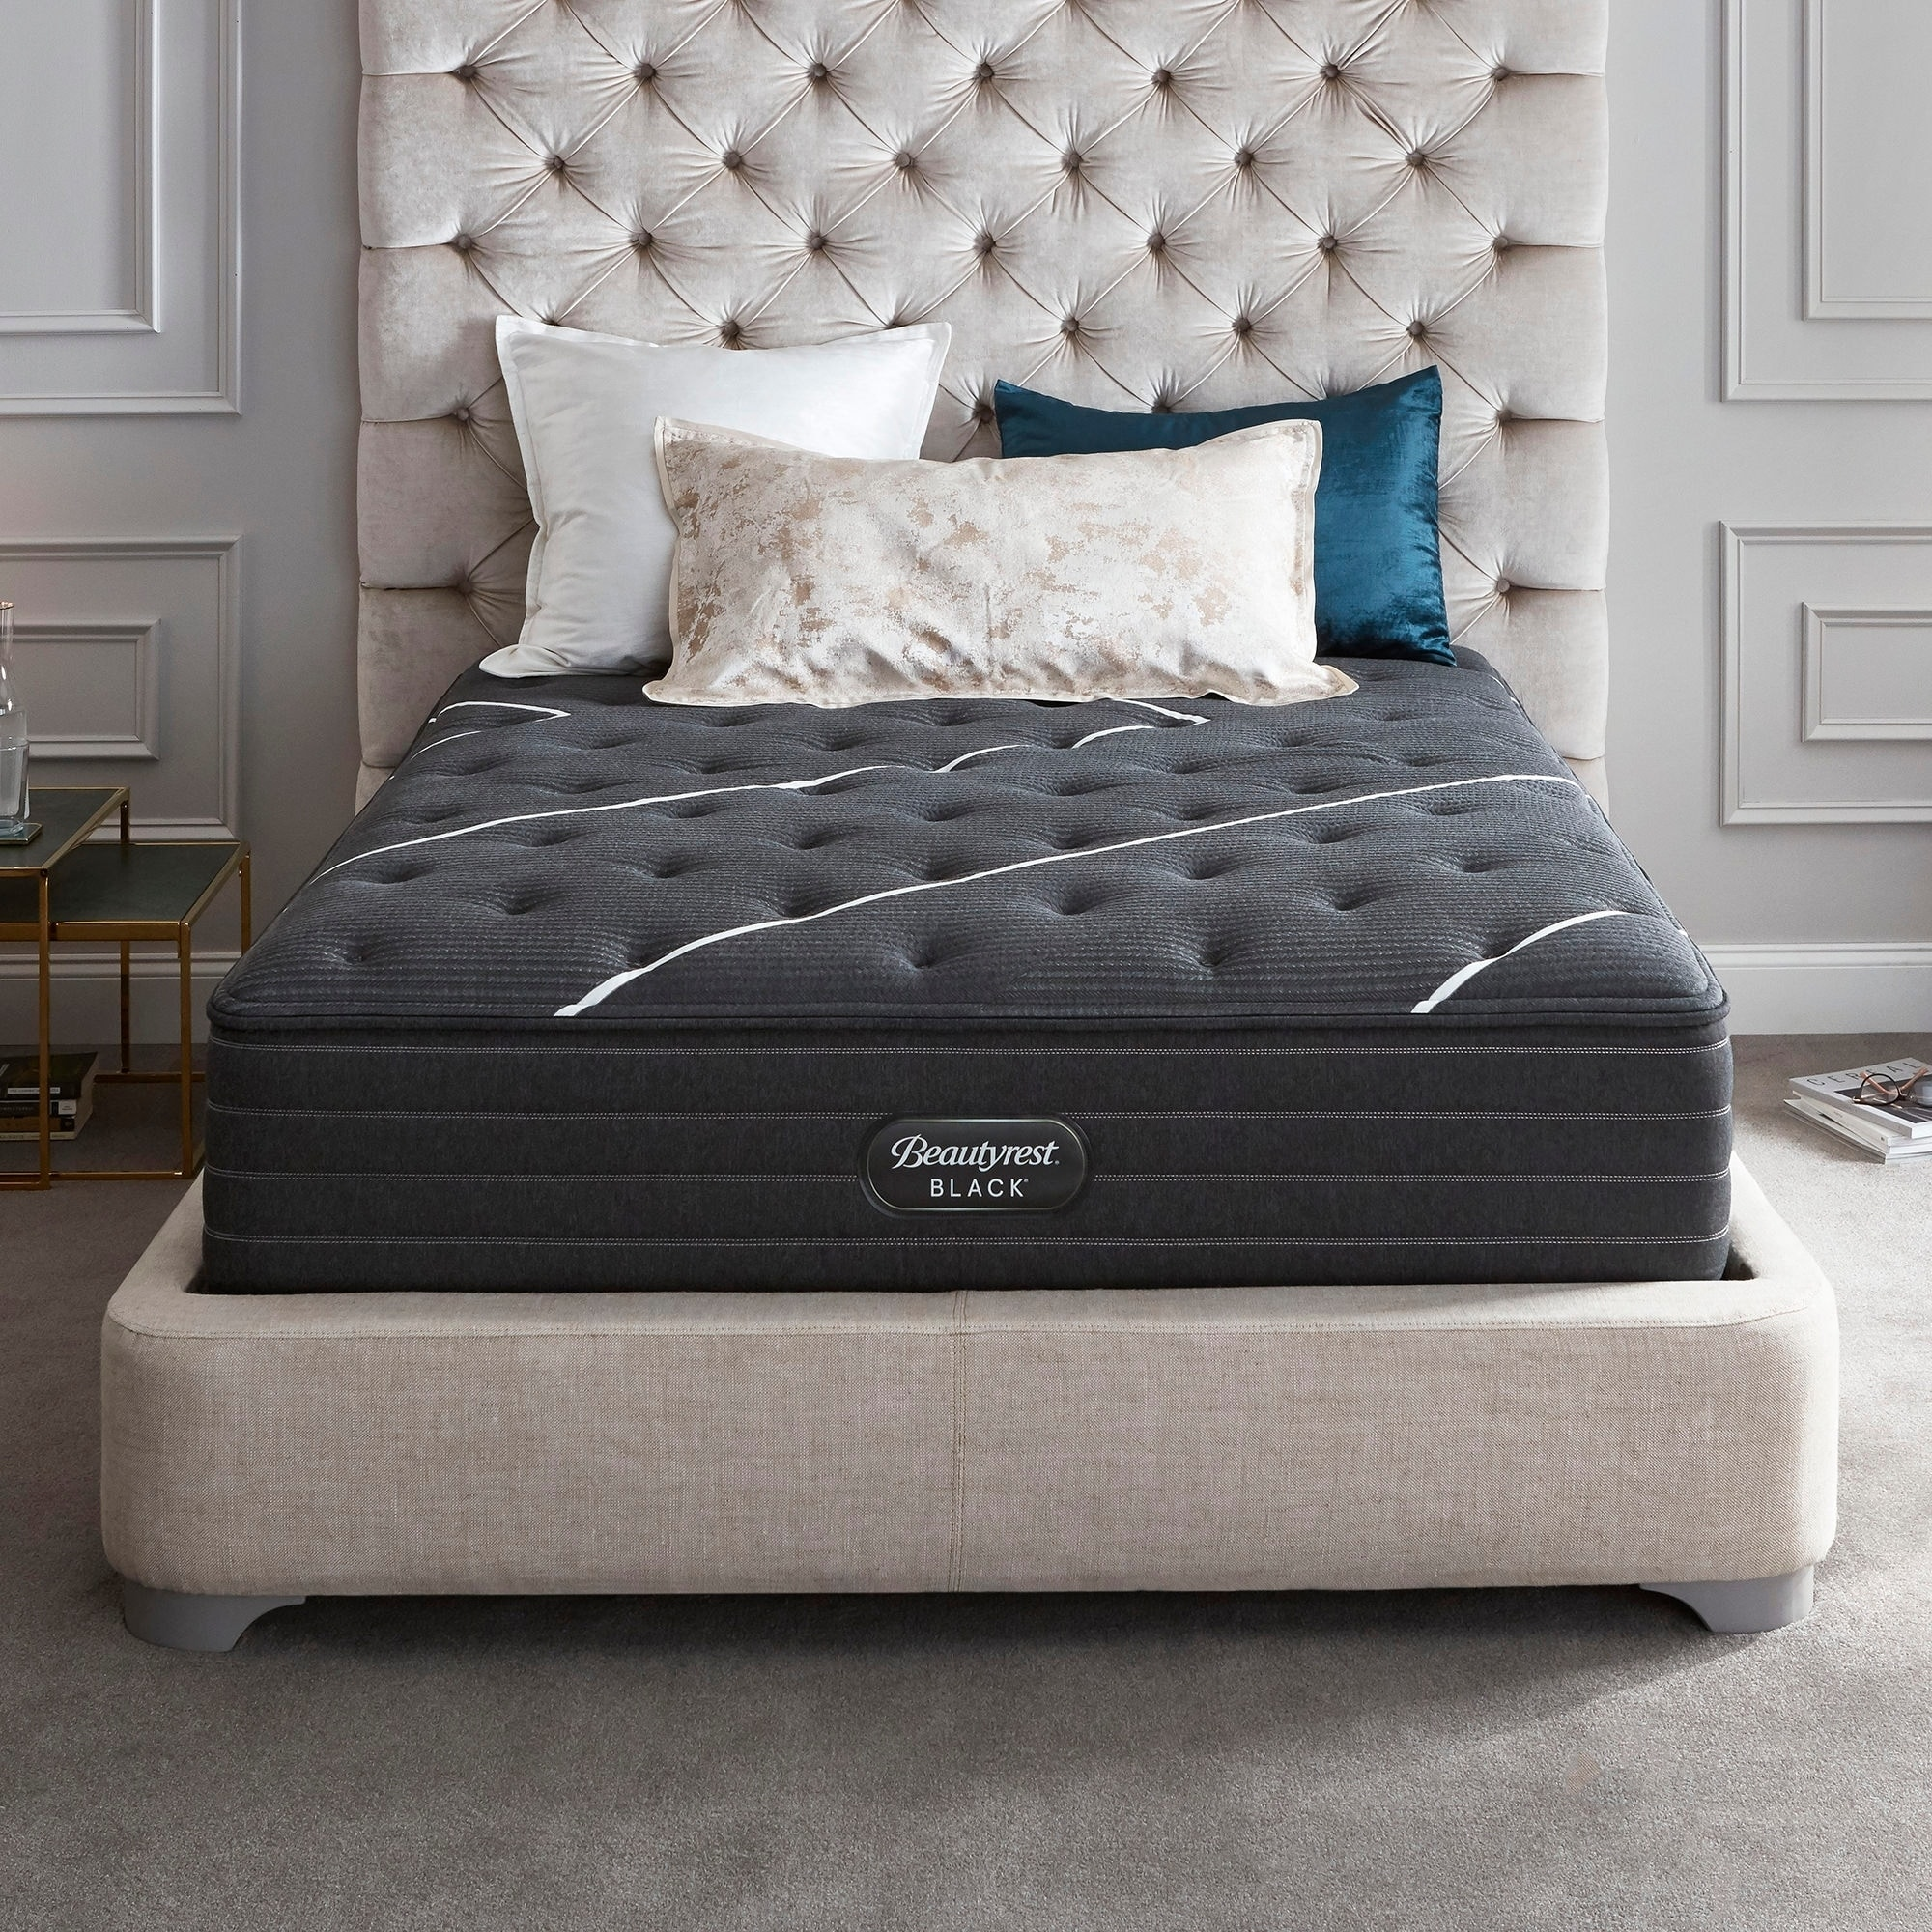 Beautyrest Black C-Class 14-inch Medium Innerspring Mattress (Queen)